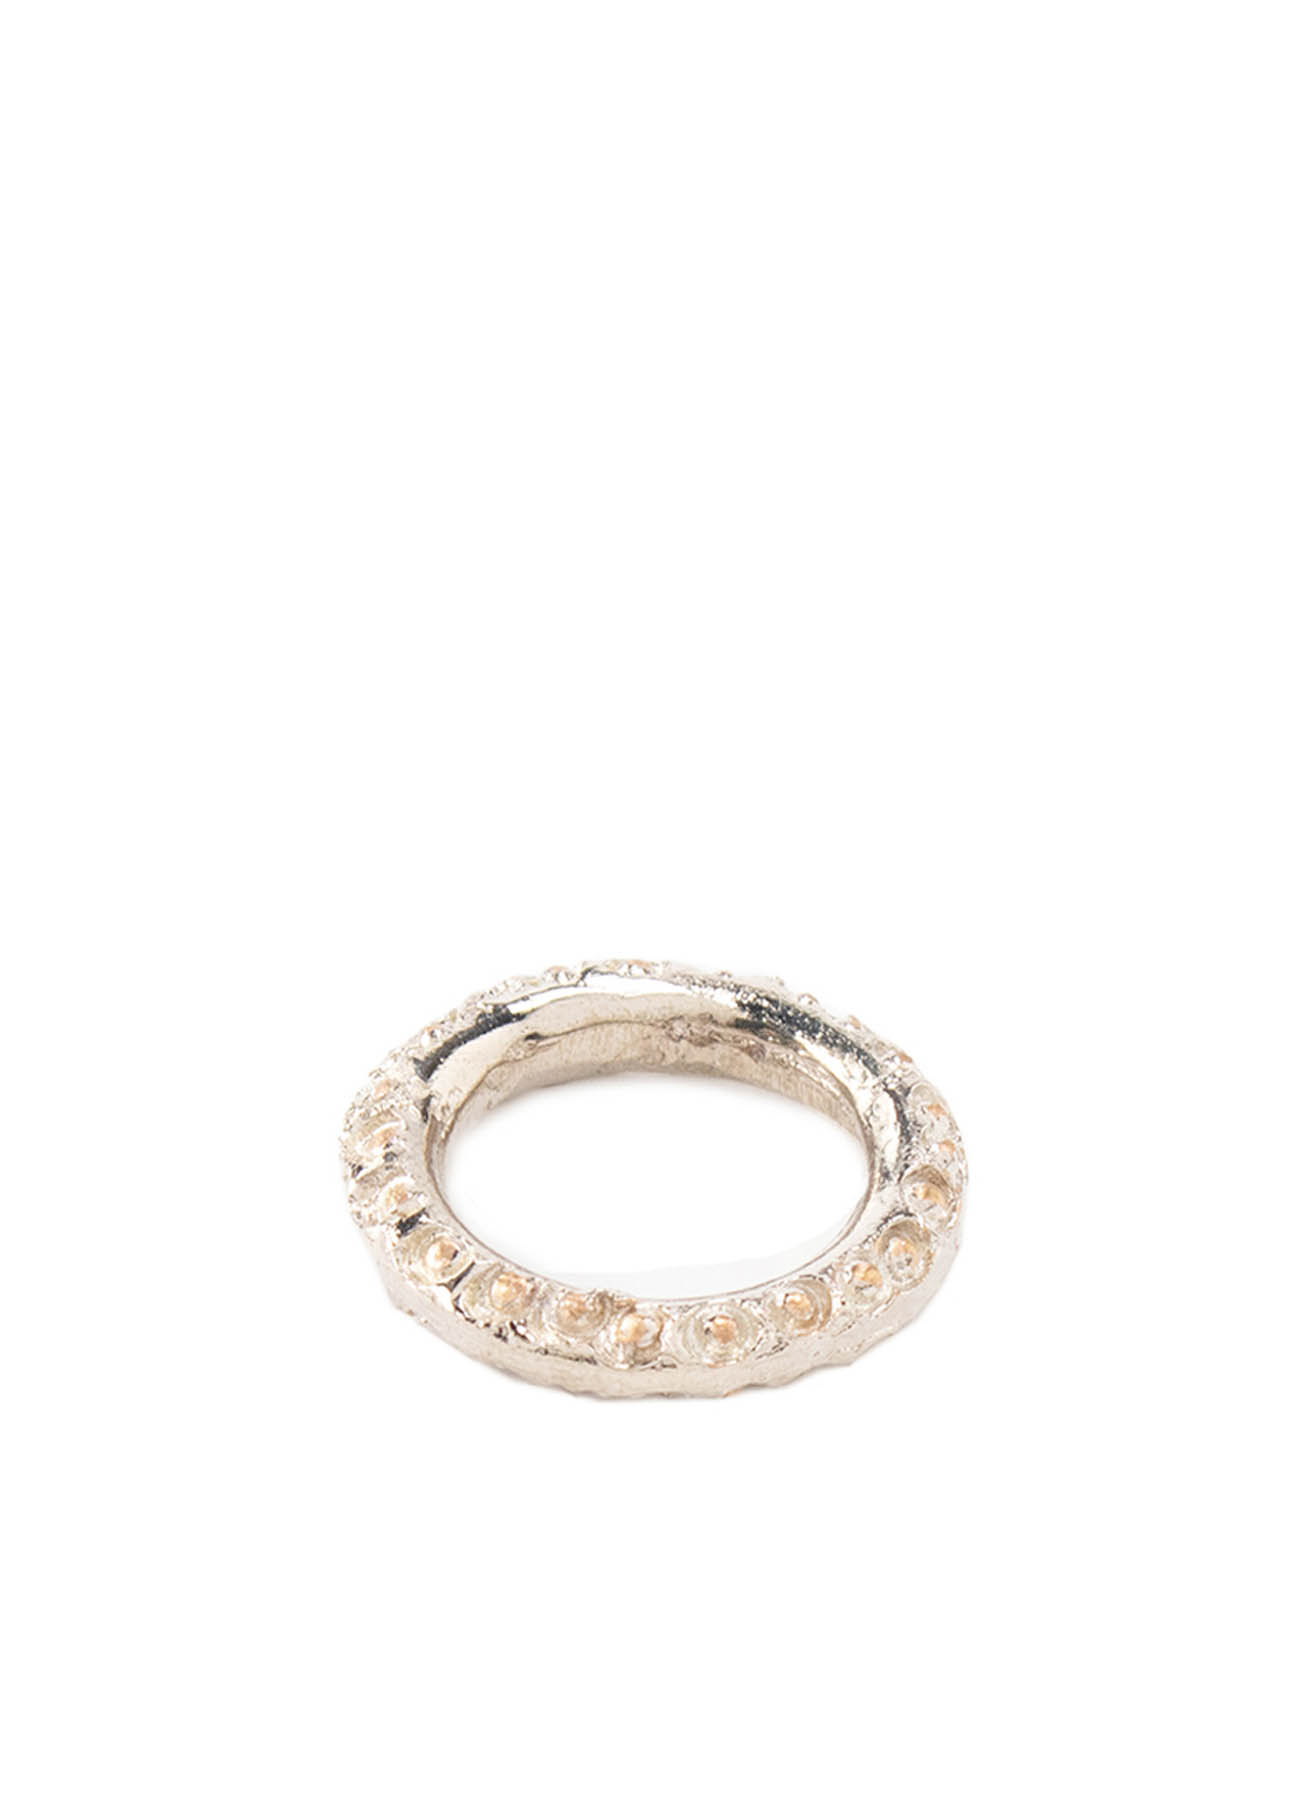 FMS SILVER Y's PINK S.V.B RING D